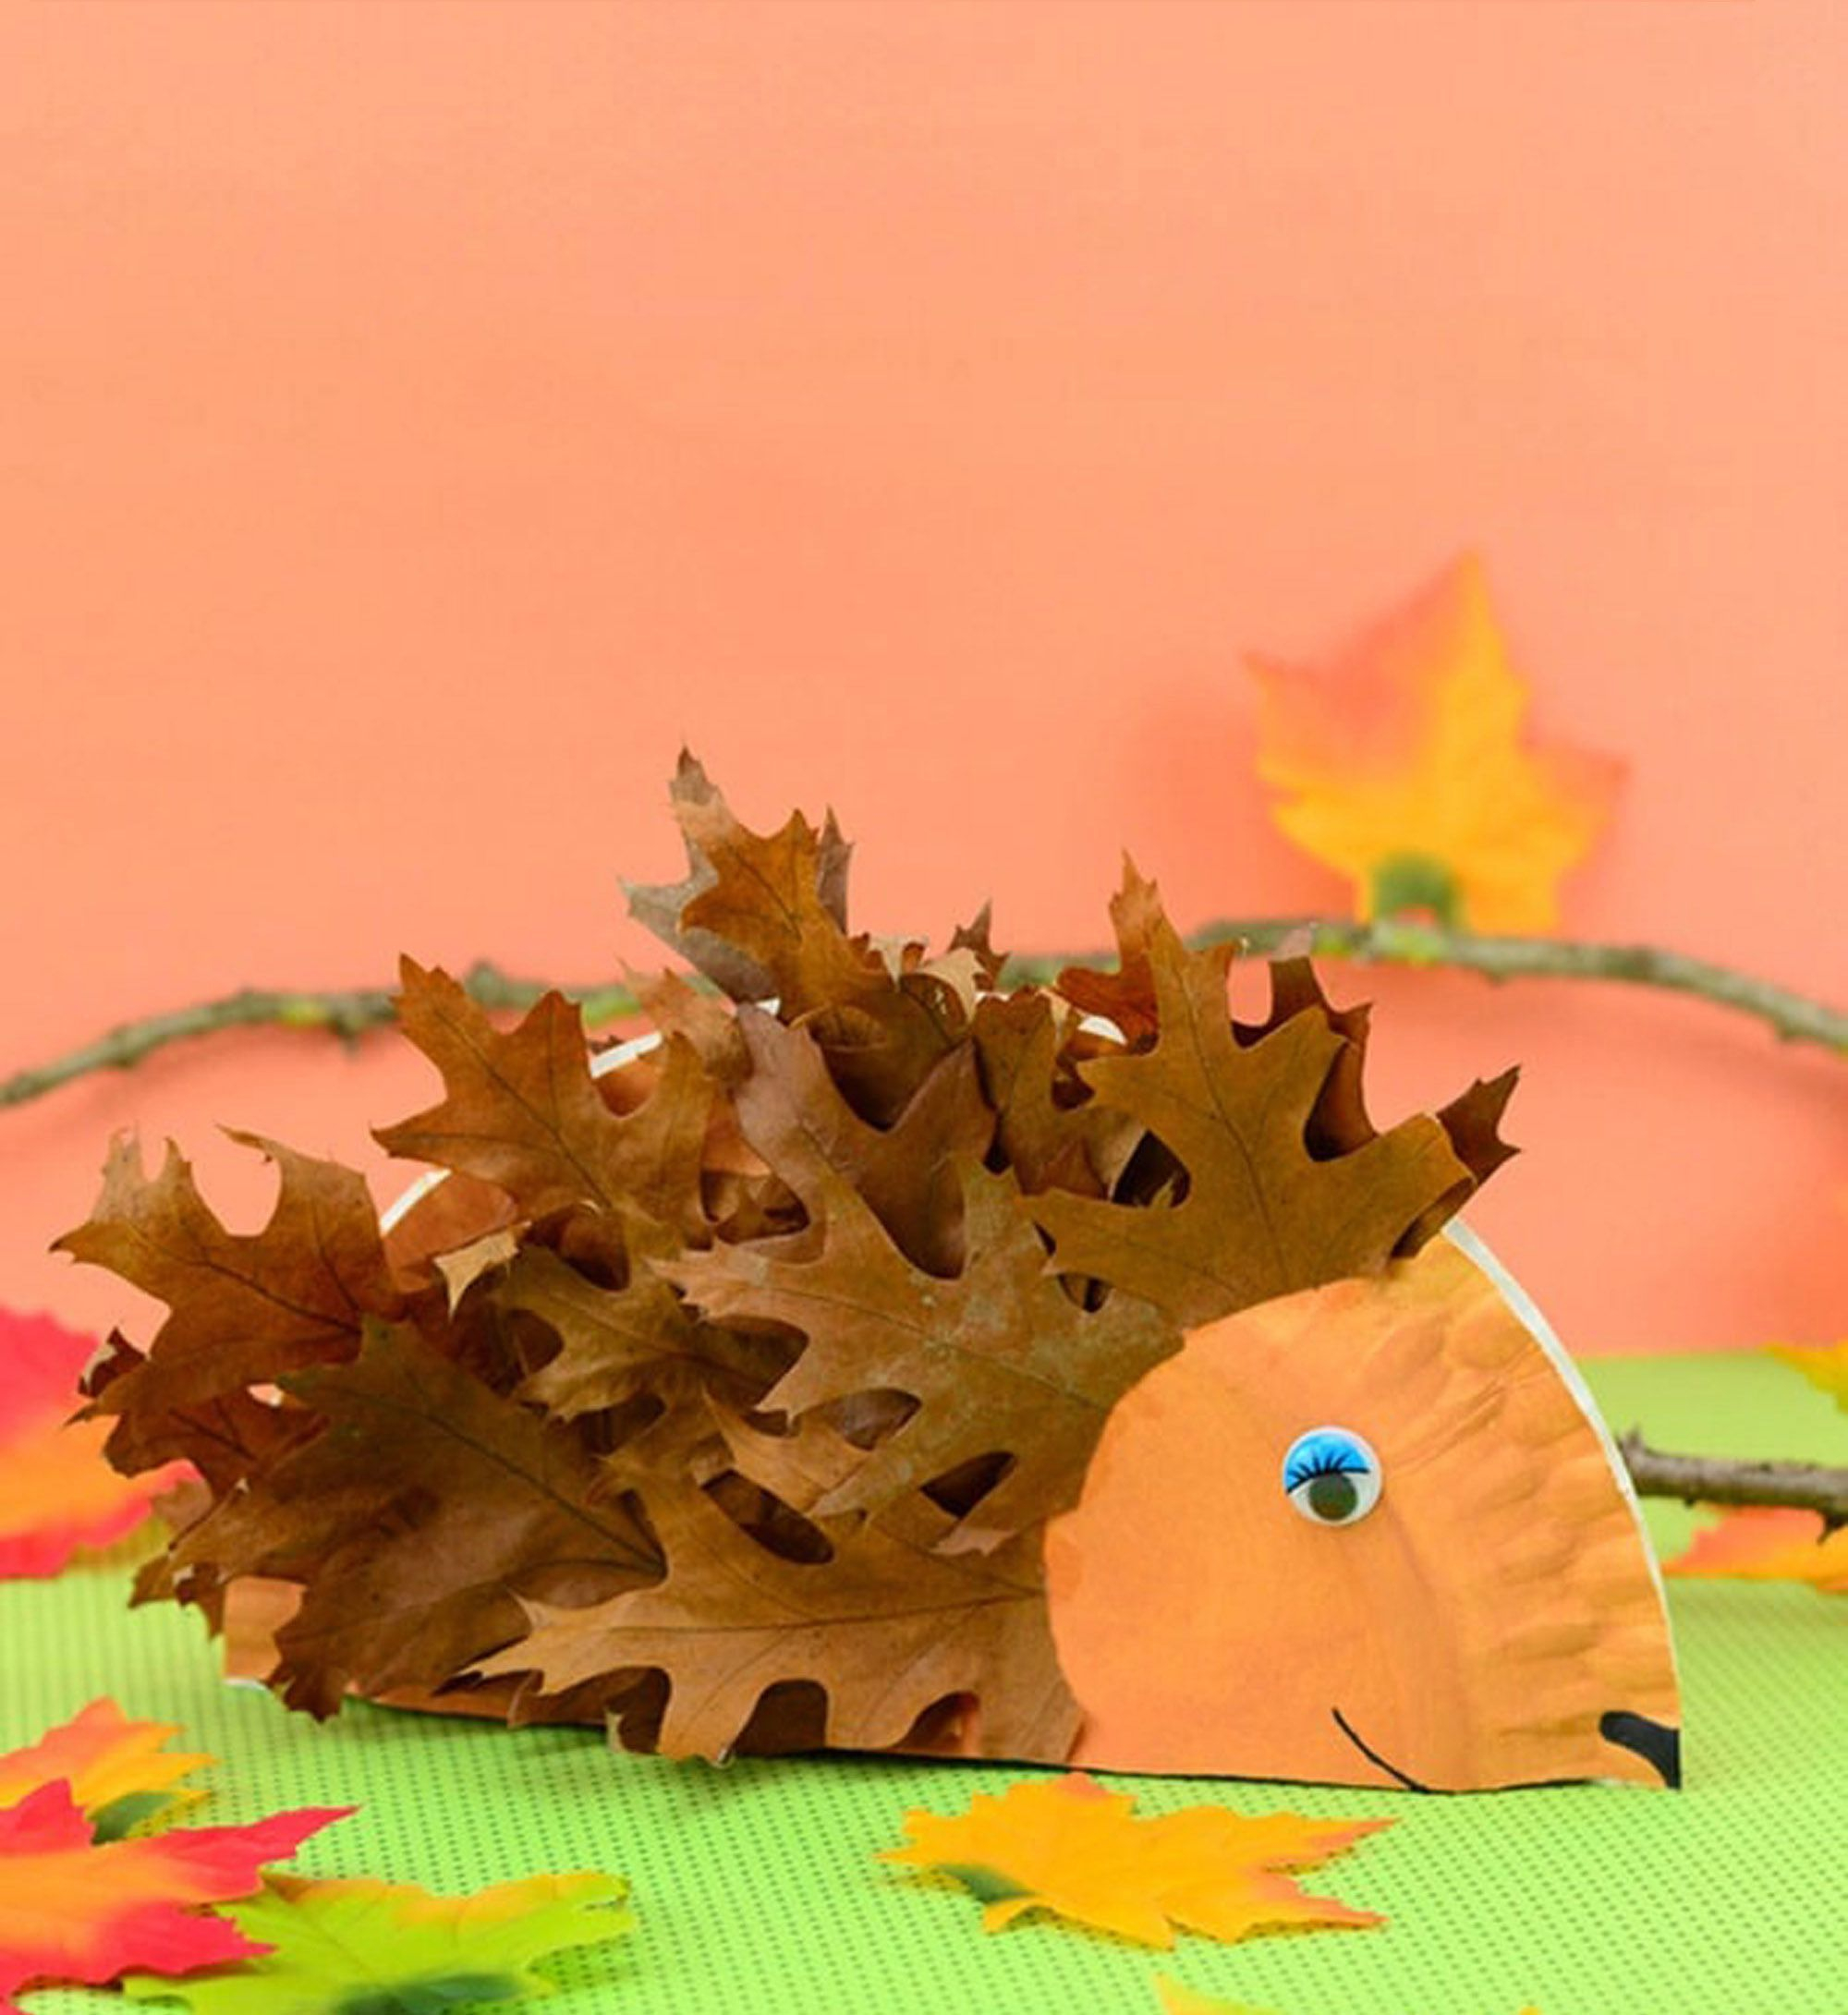 Simple and Cute Construction Paper Crafts for Kids 58 Fall Crafts For Kids Fall Activities And Project Ideas For Kids